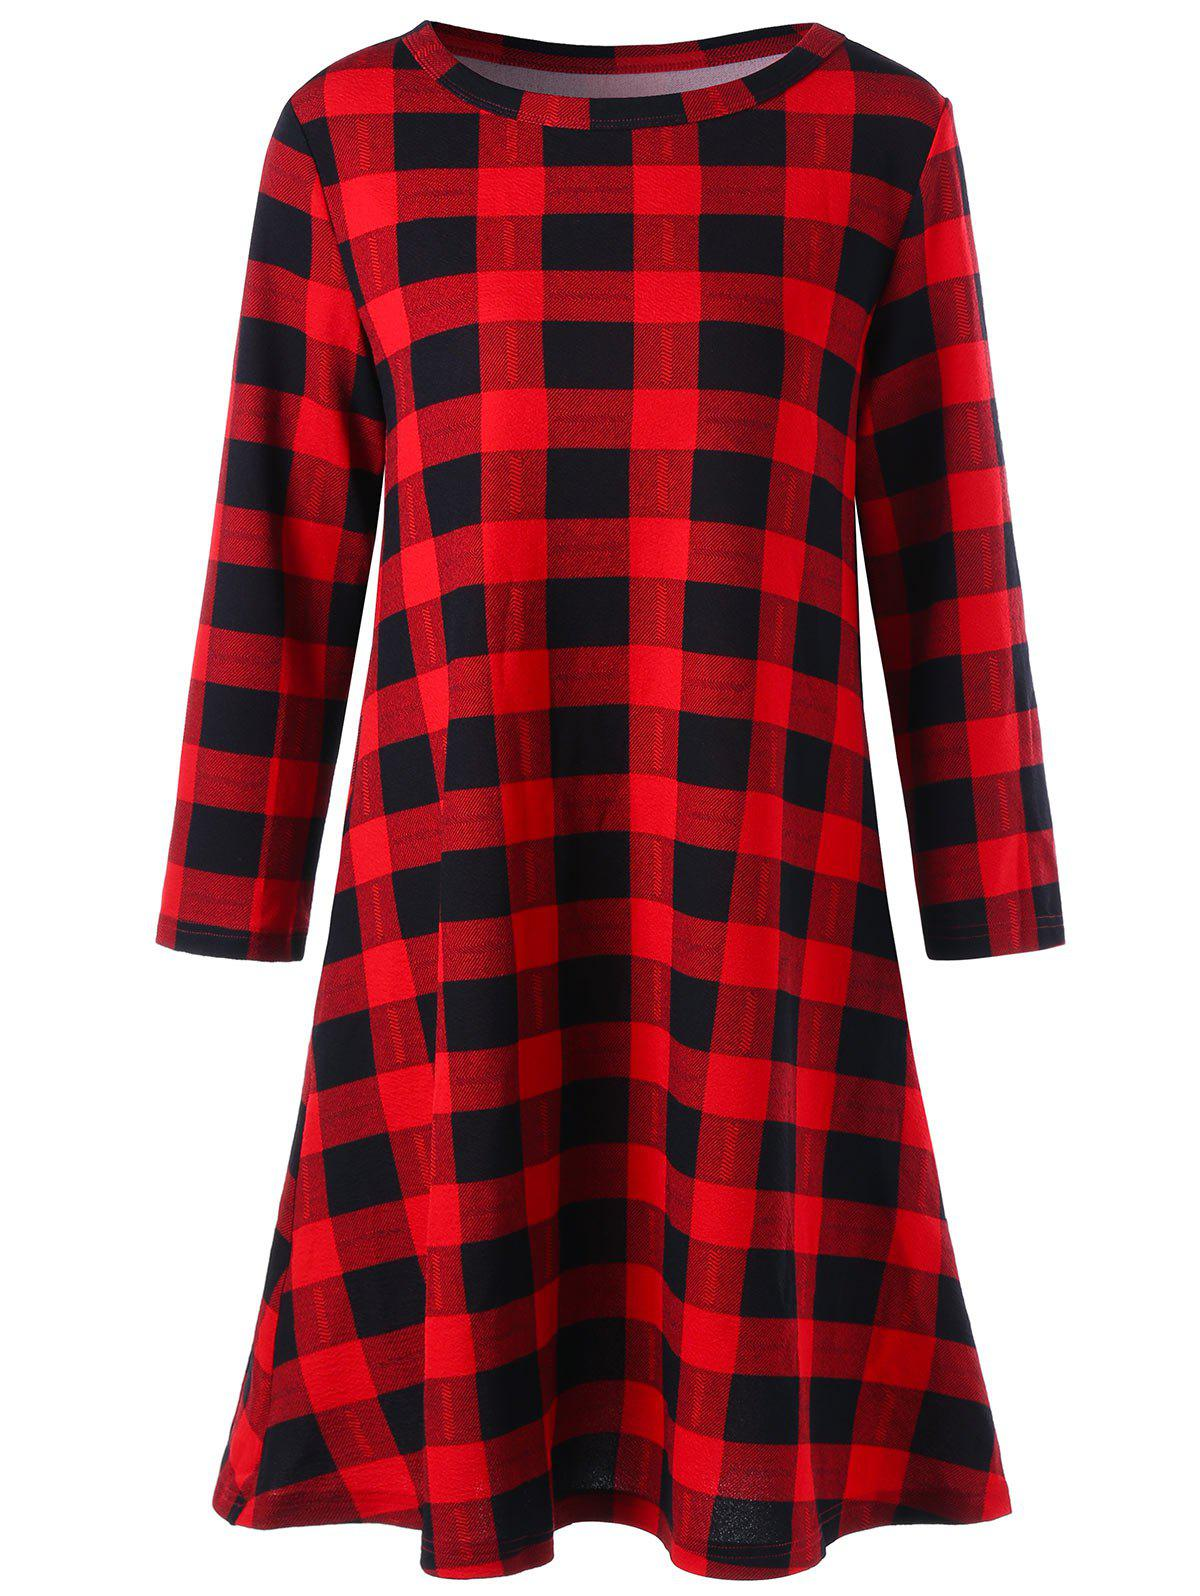 Christmas Plaid Swing Mini DressWOMEN<br><br>Size: 2XL; Color: PLAID; Style: Brief; Material: Polyester,Spandex; Silhouette: A-Line; Dresses Length: Mini; Neckline: Round Collar; Sleeve Length: Long Sleeves; Pattern Type: Plaid; With Belt: No; Season: Fall,Spring; Weight: 0.3300kg; Package Contents: 1 x Dress;